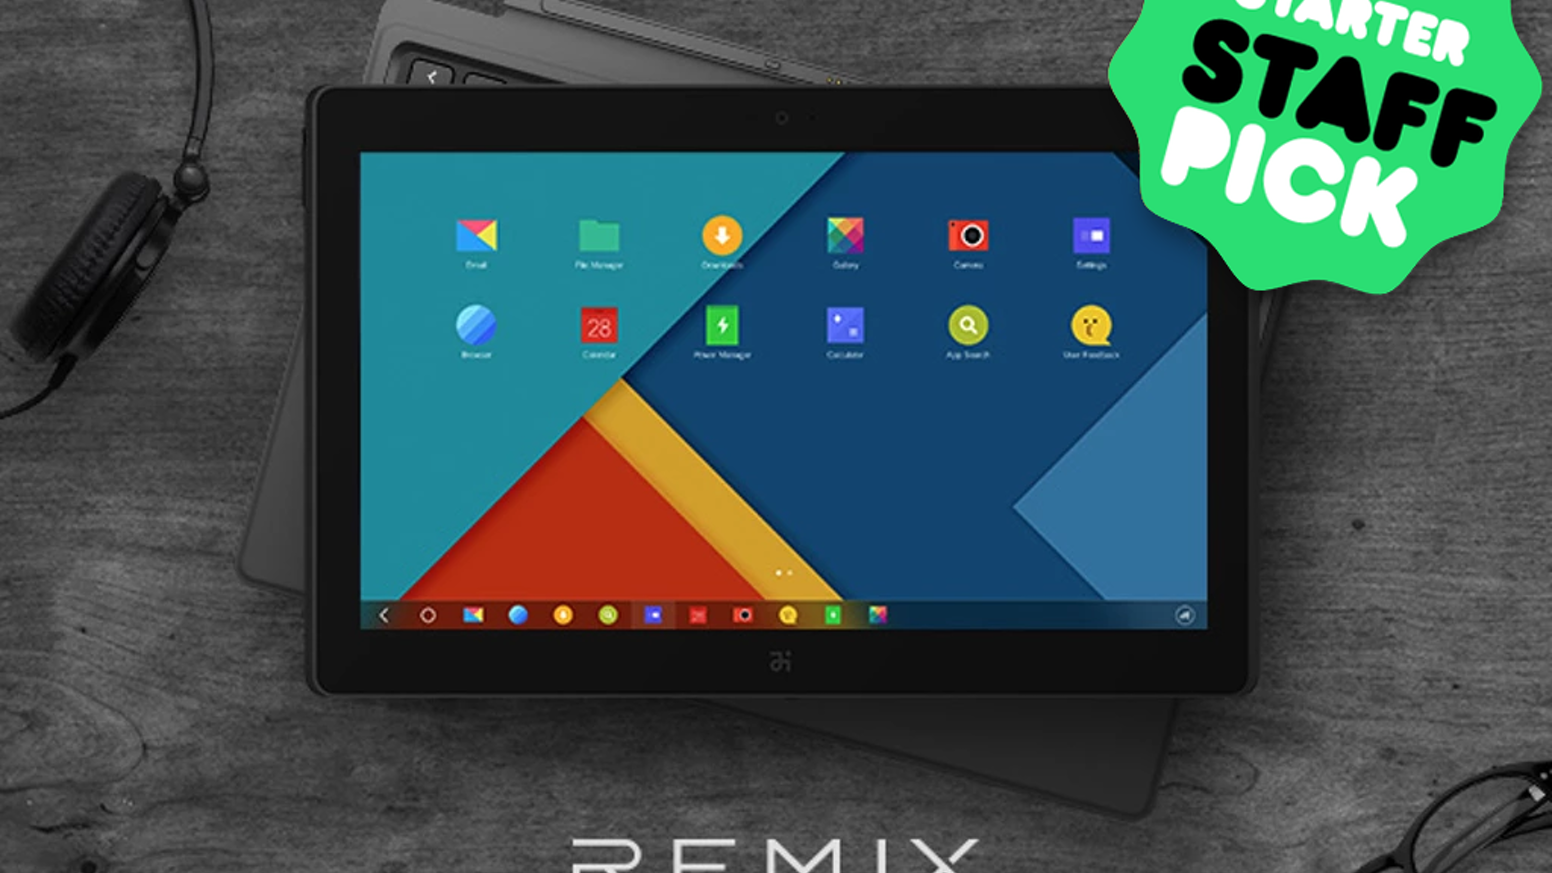 Remix provides a smart Android productivity & communication experience. Create content easily & run Android apps in multiple windows.